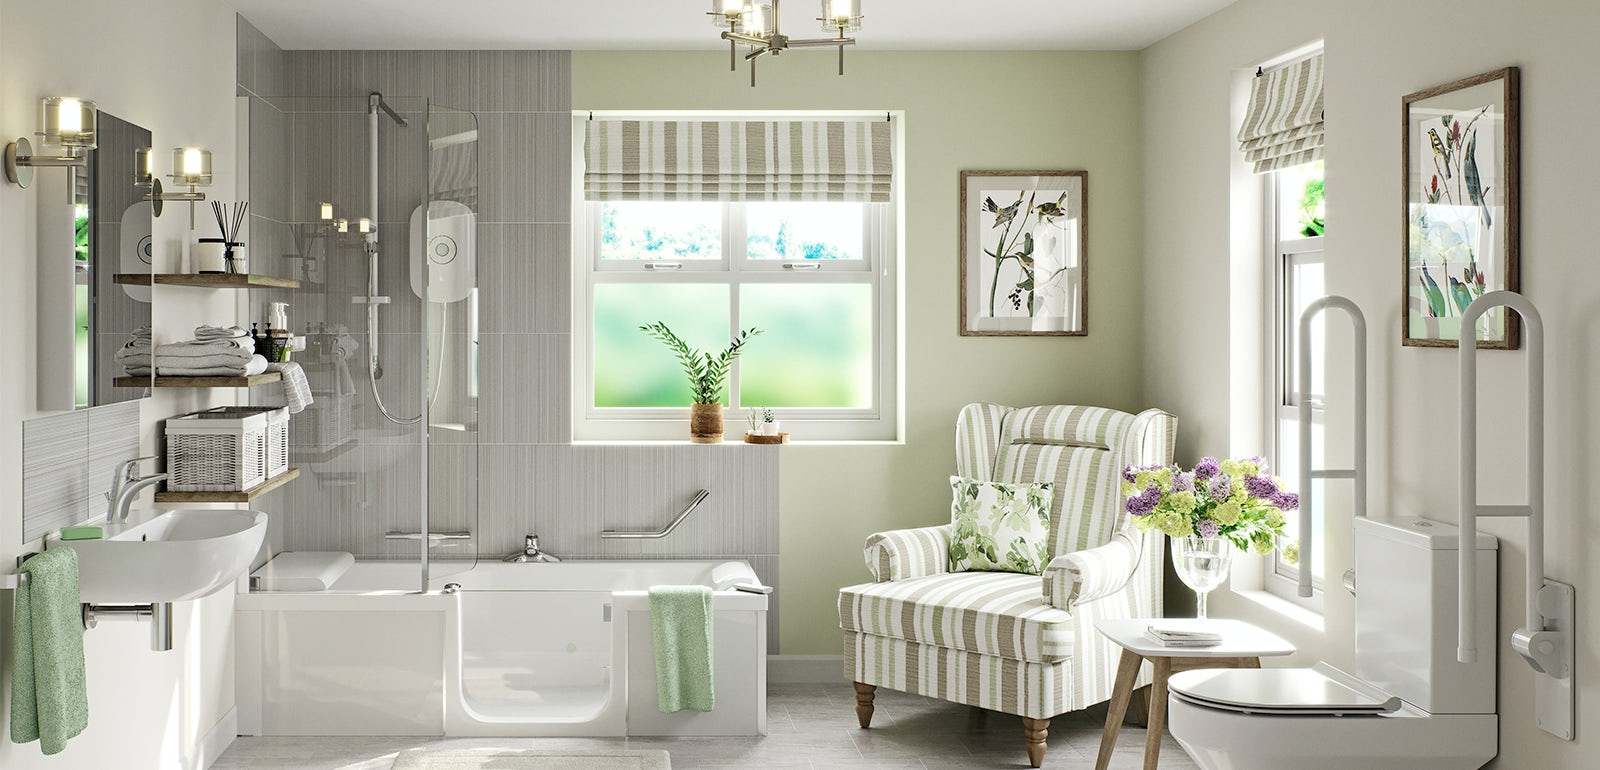 Attrayant Independent Living: How To Create A Stylish Bathroom For An Elderly Relative